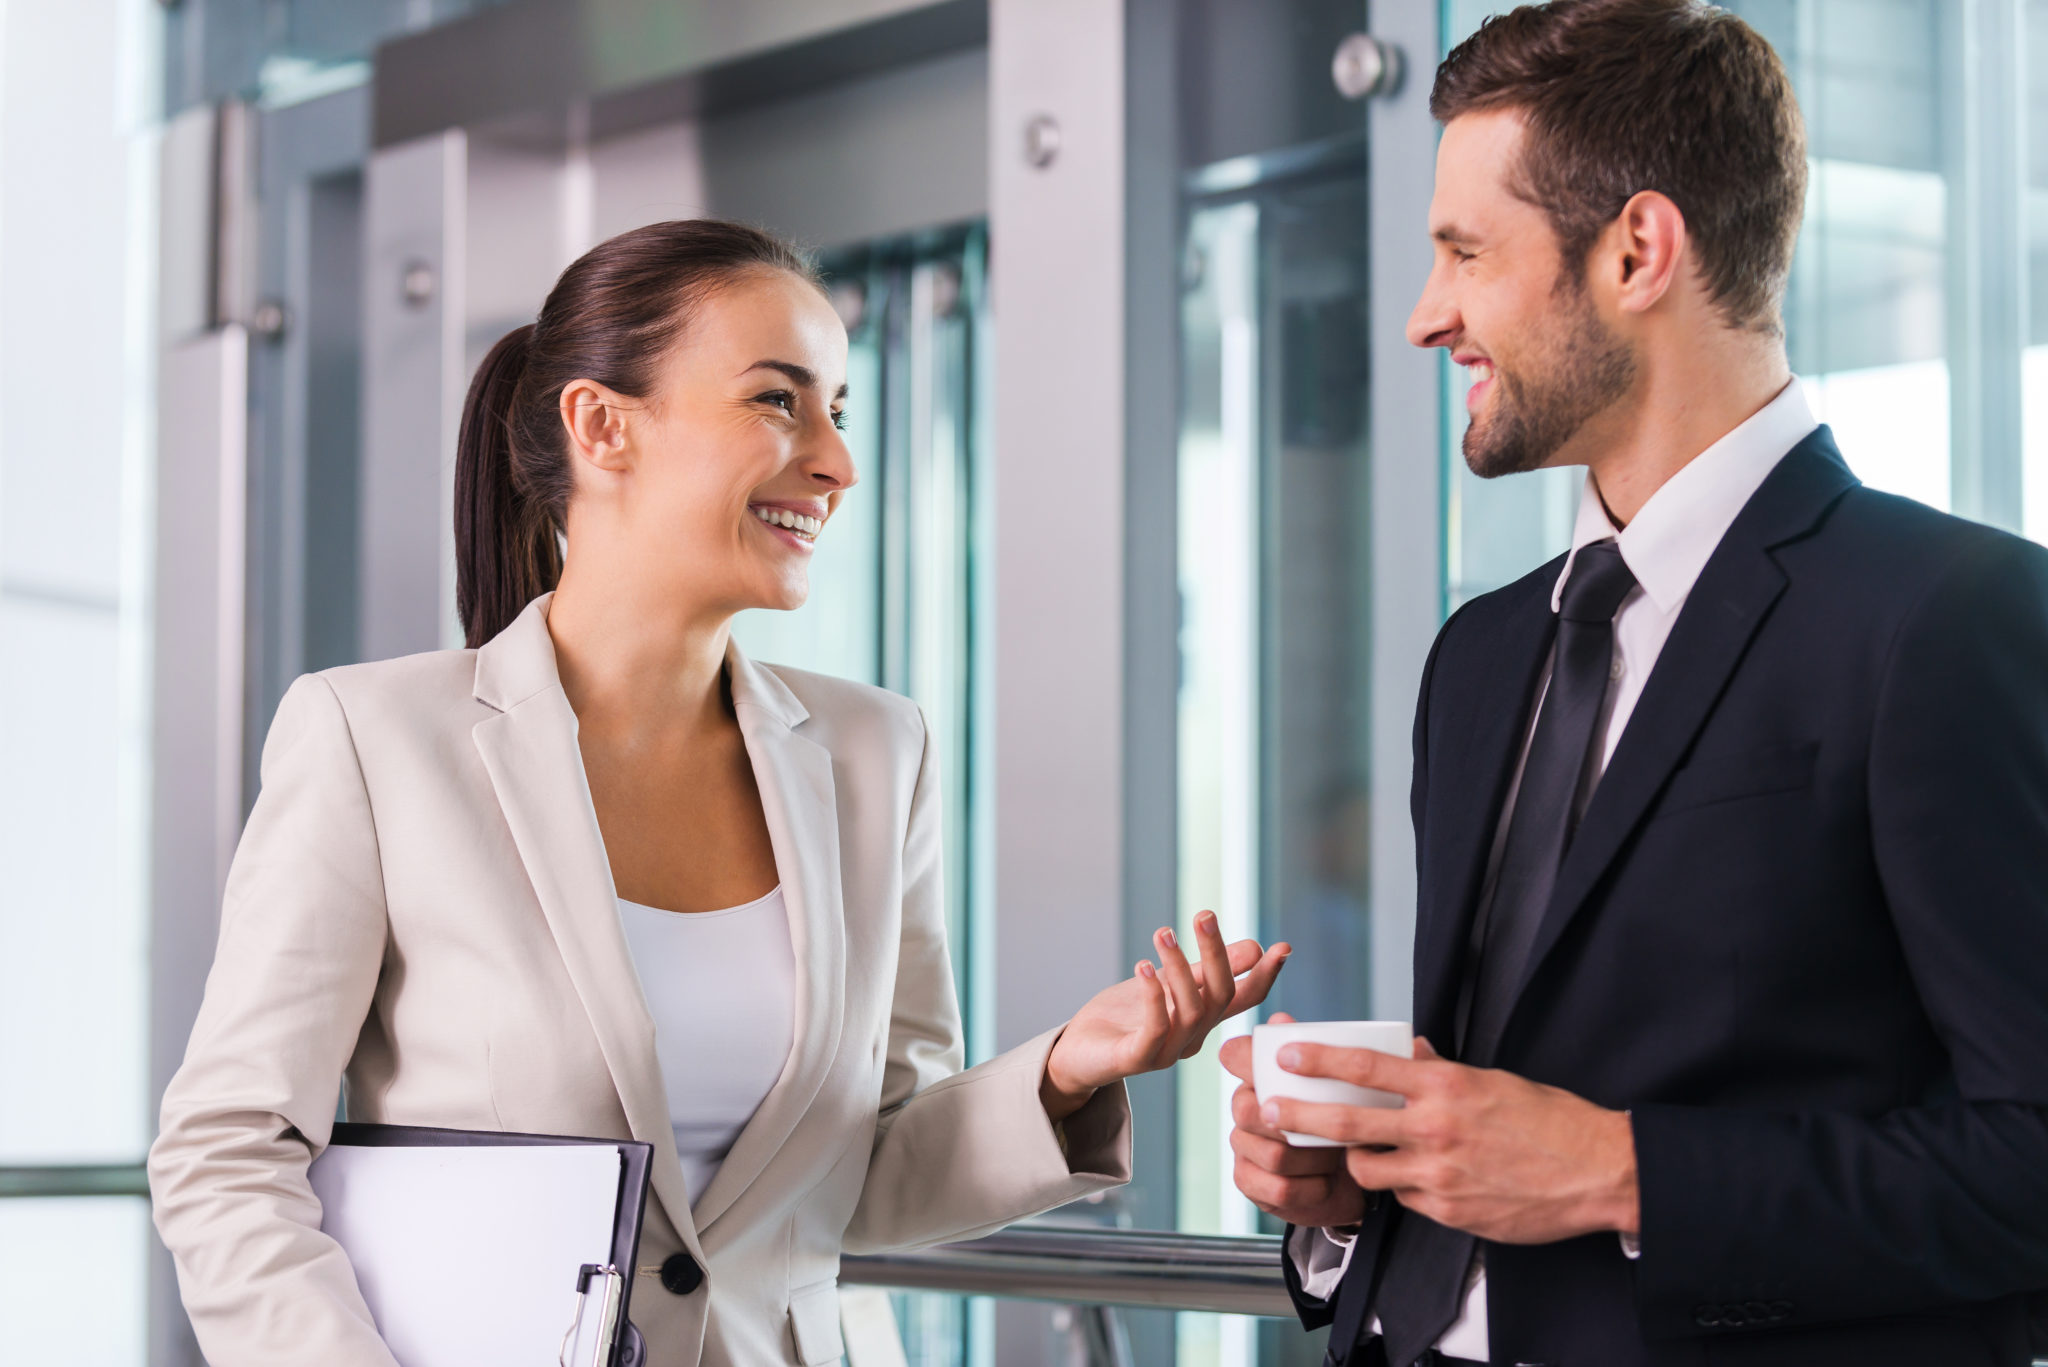 Professional Networking Sites vs. Networking Events